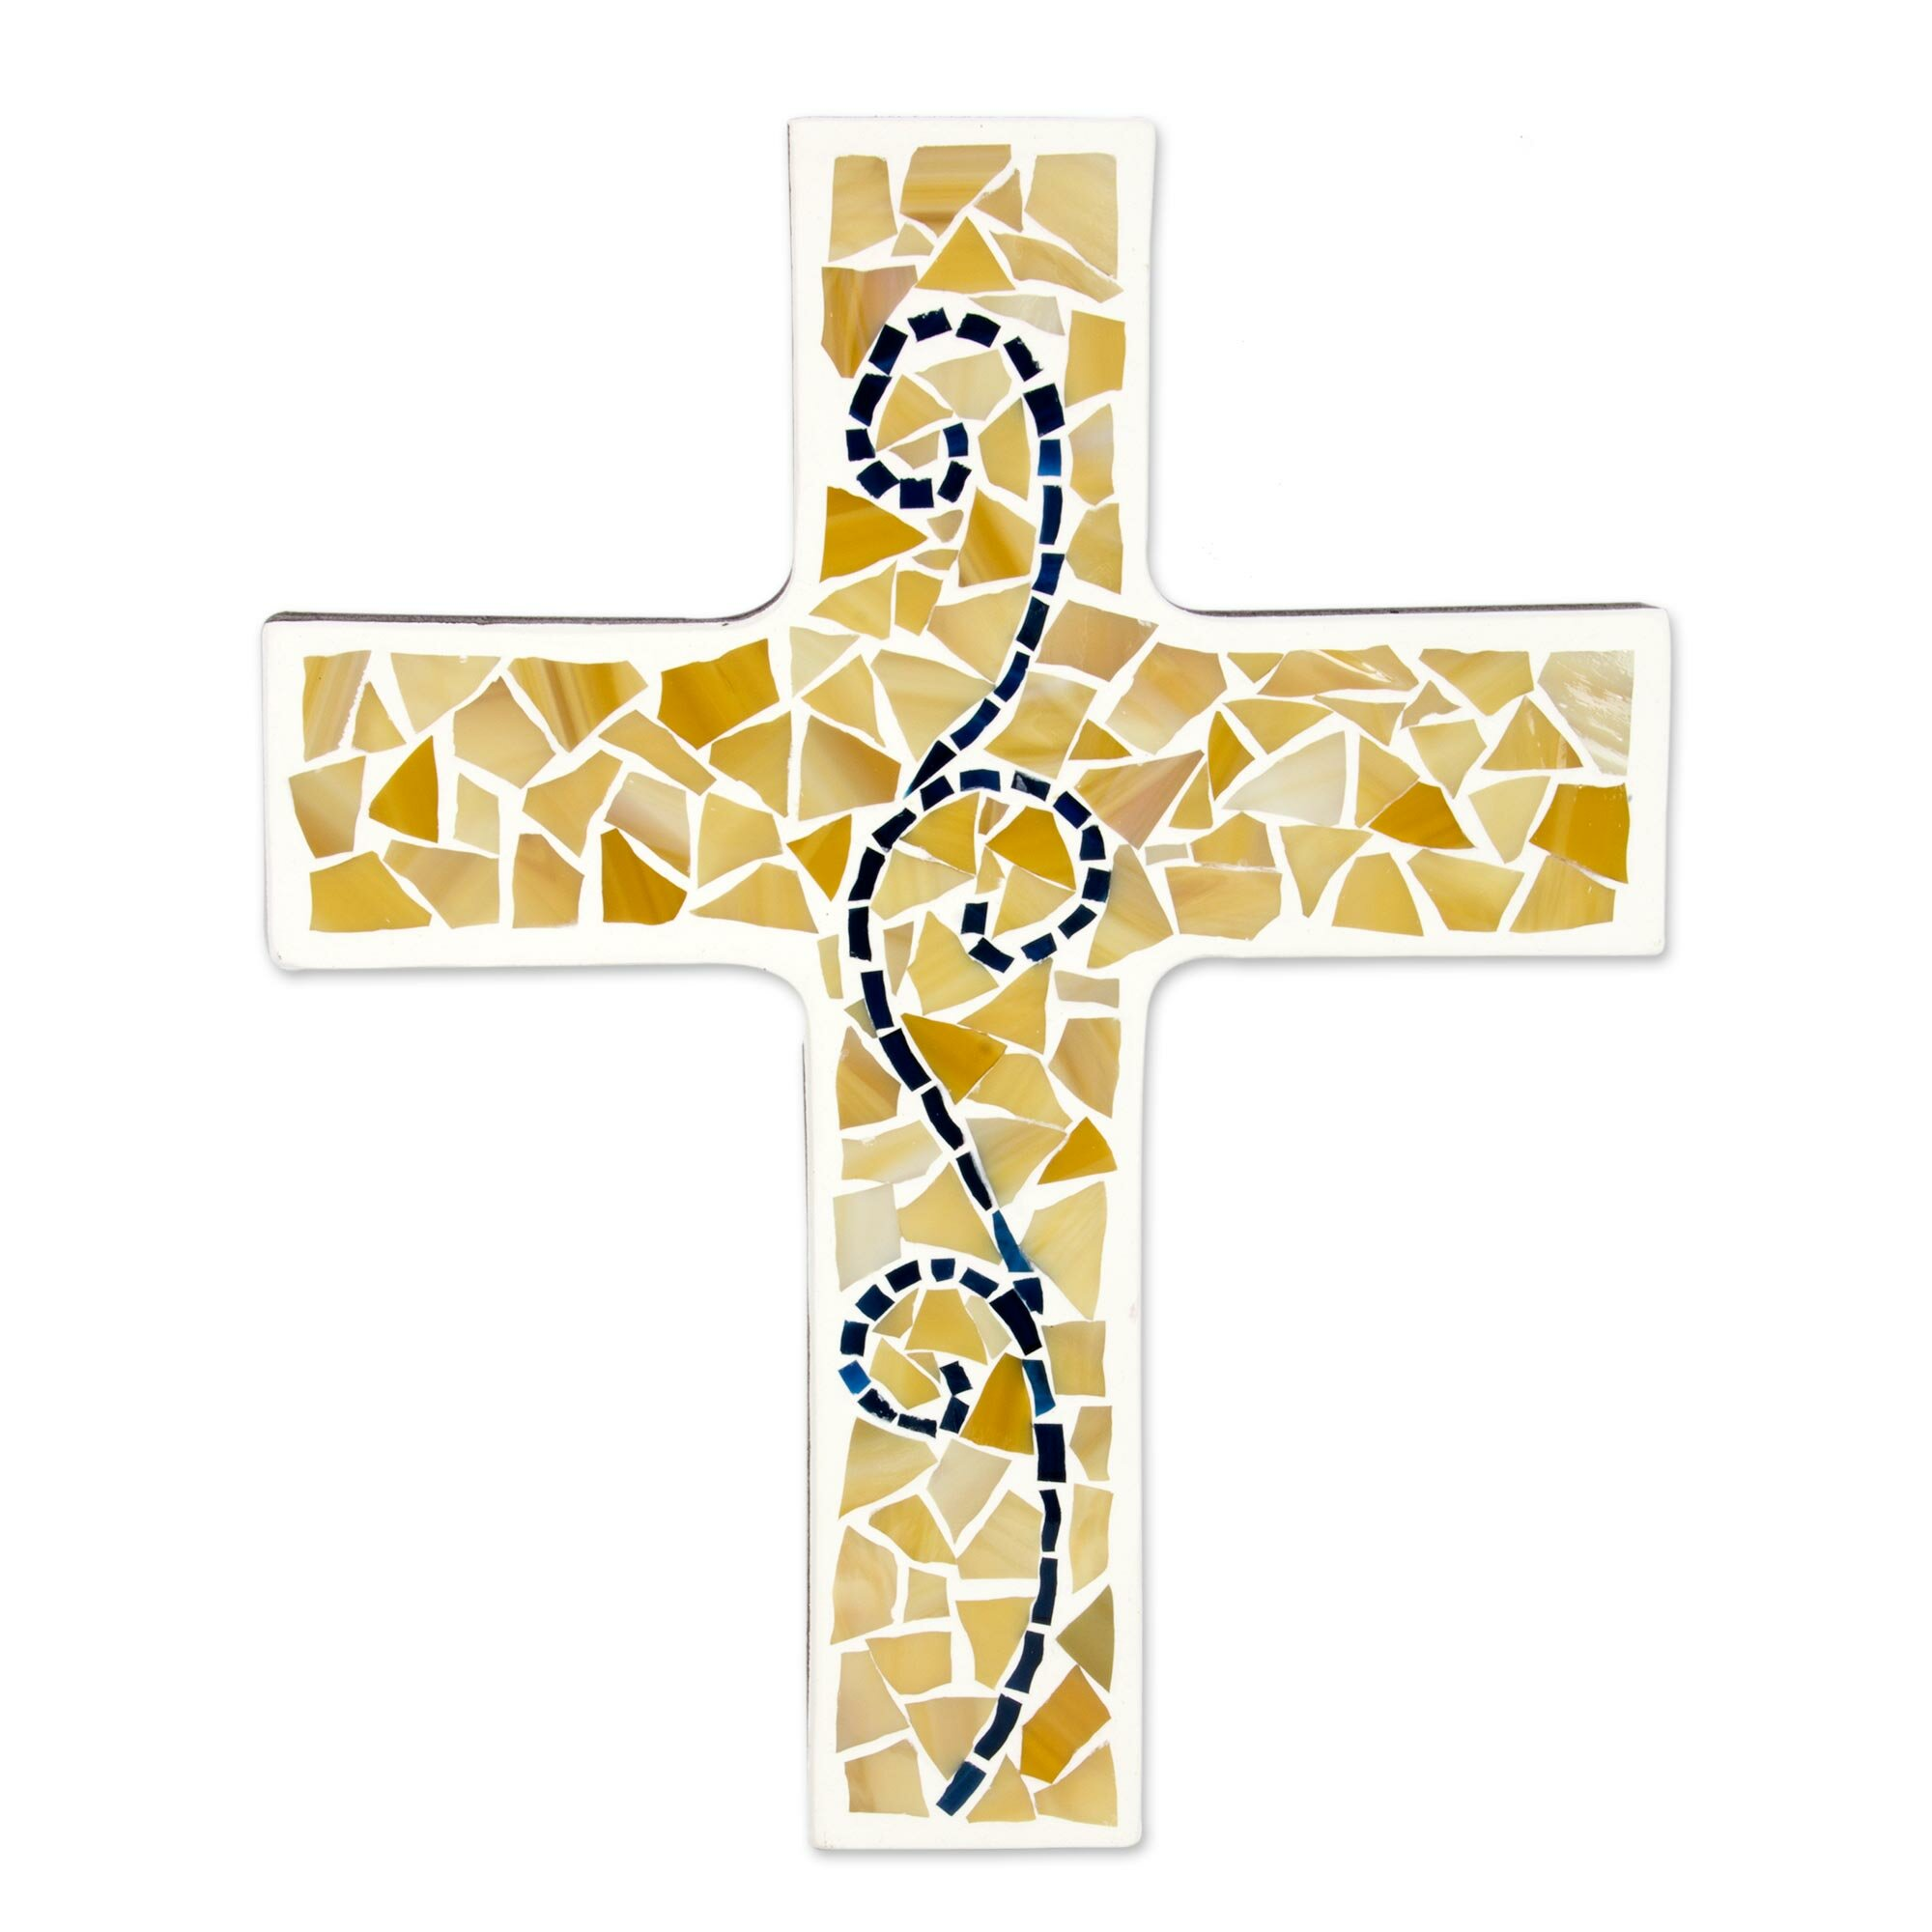 Fantastic Cross Decorations Wall Art Images - The Wall Art ...